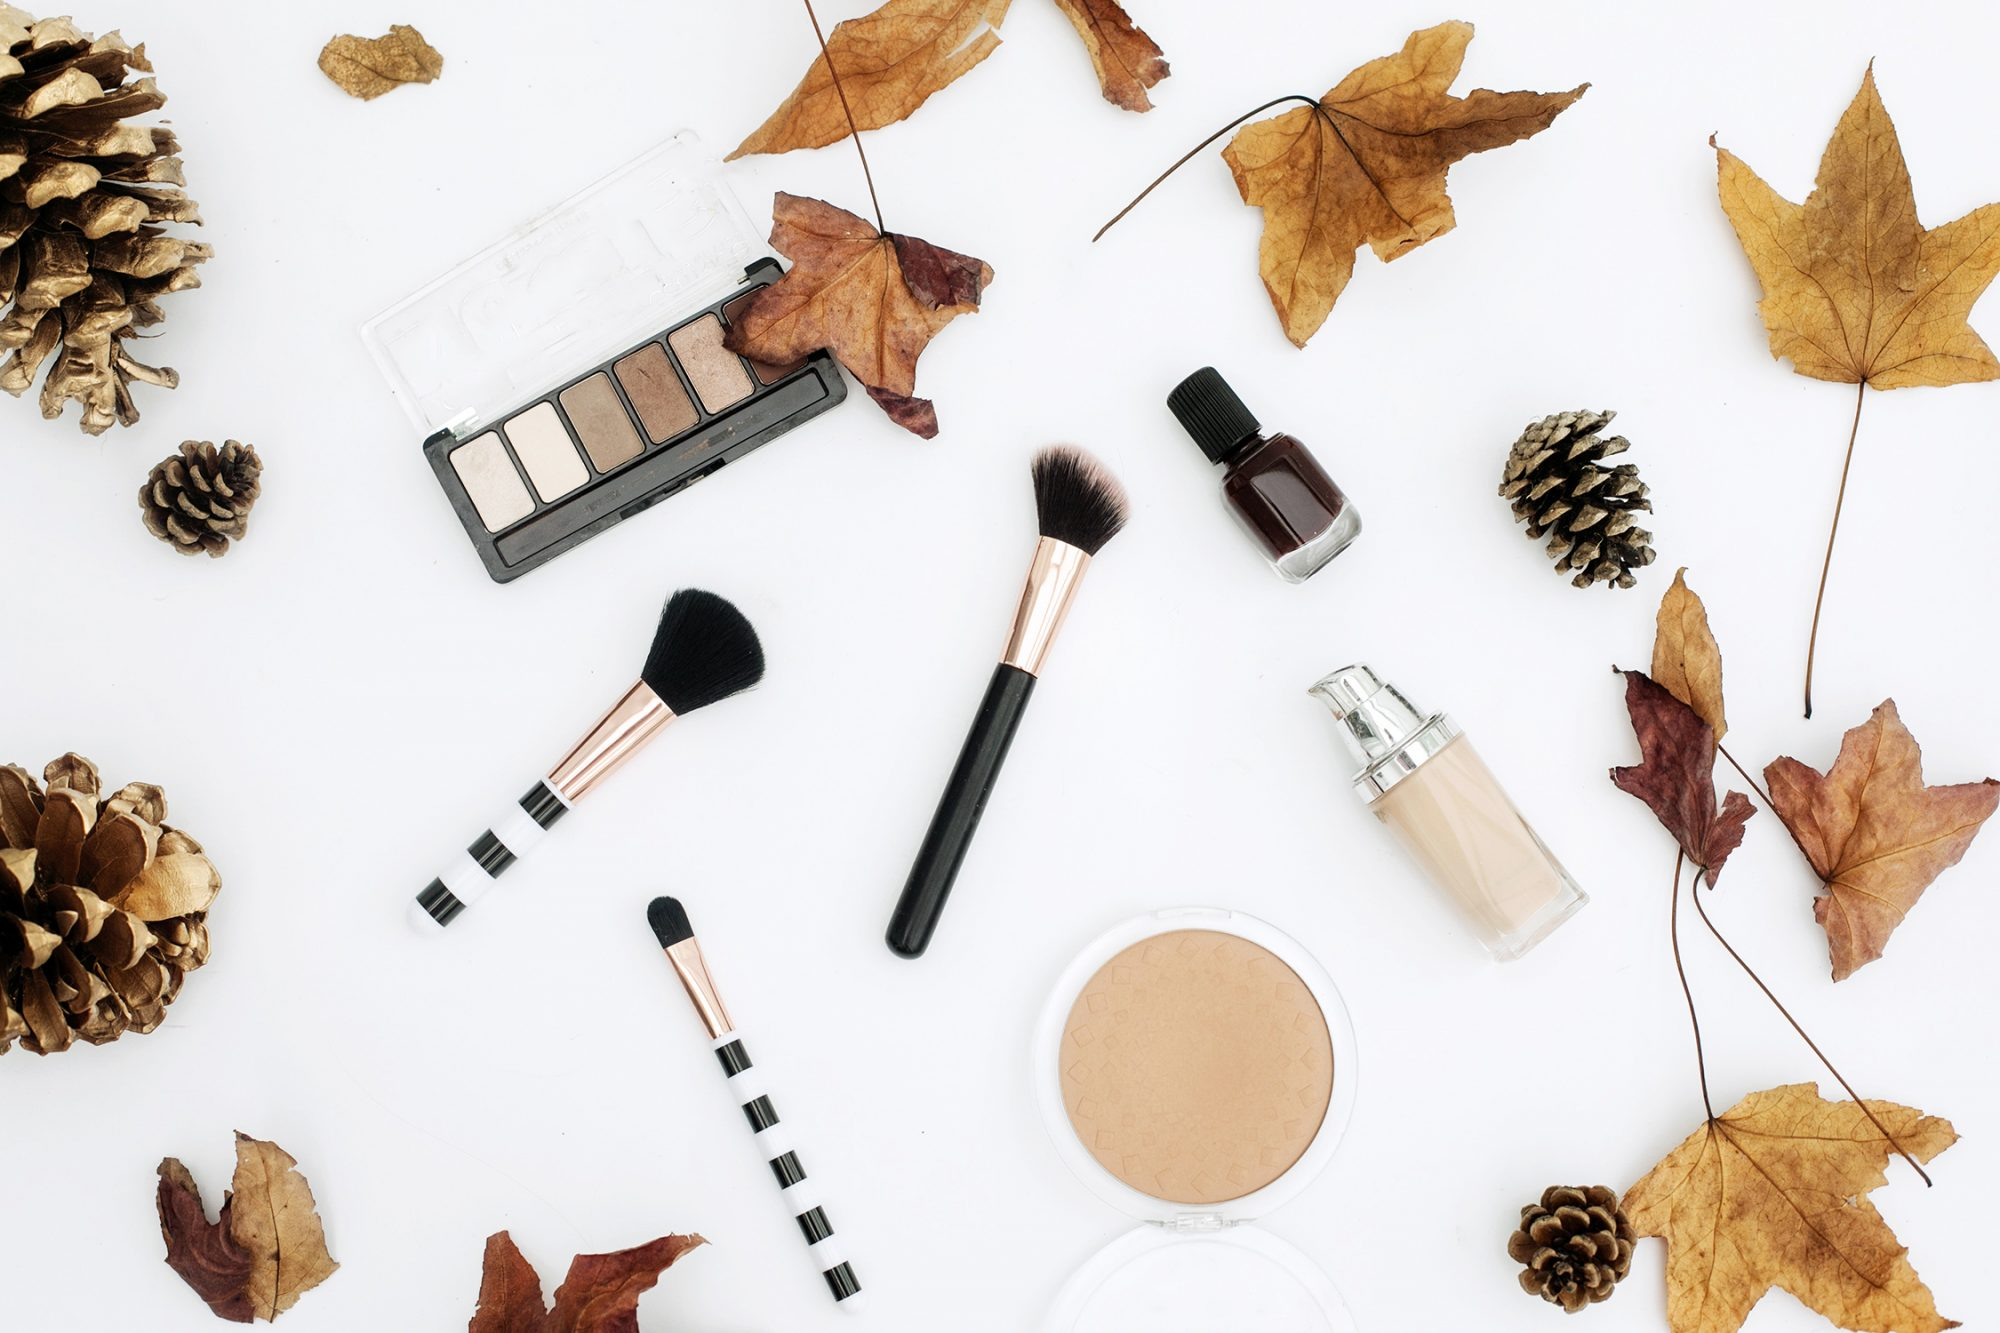 Workspace with cosmetics, lipstick and fall leaves